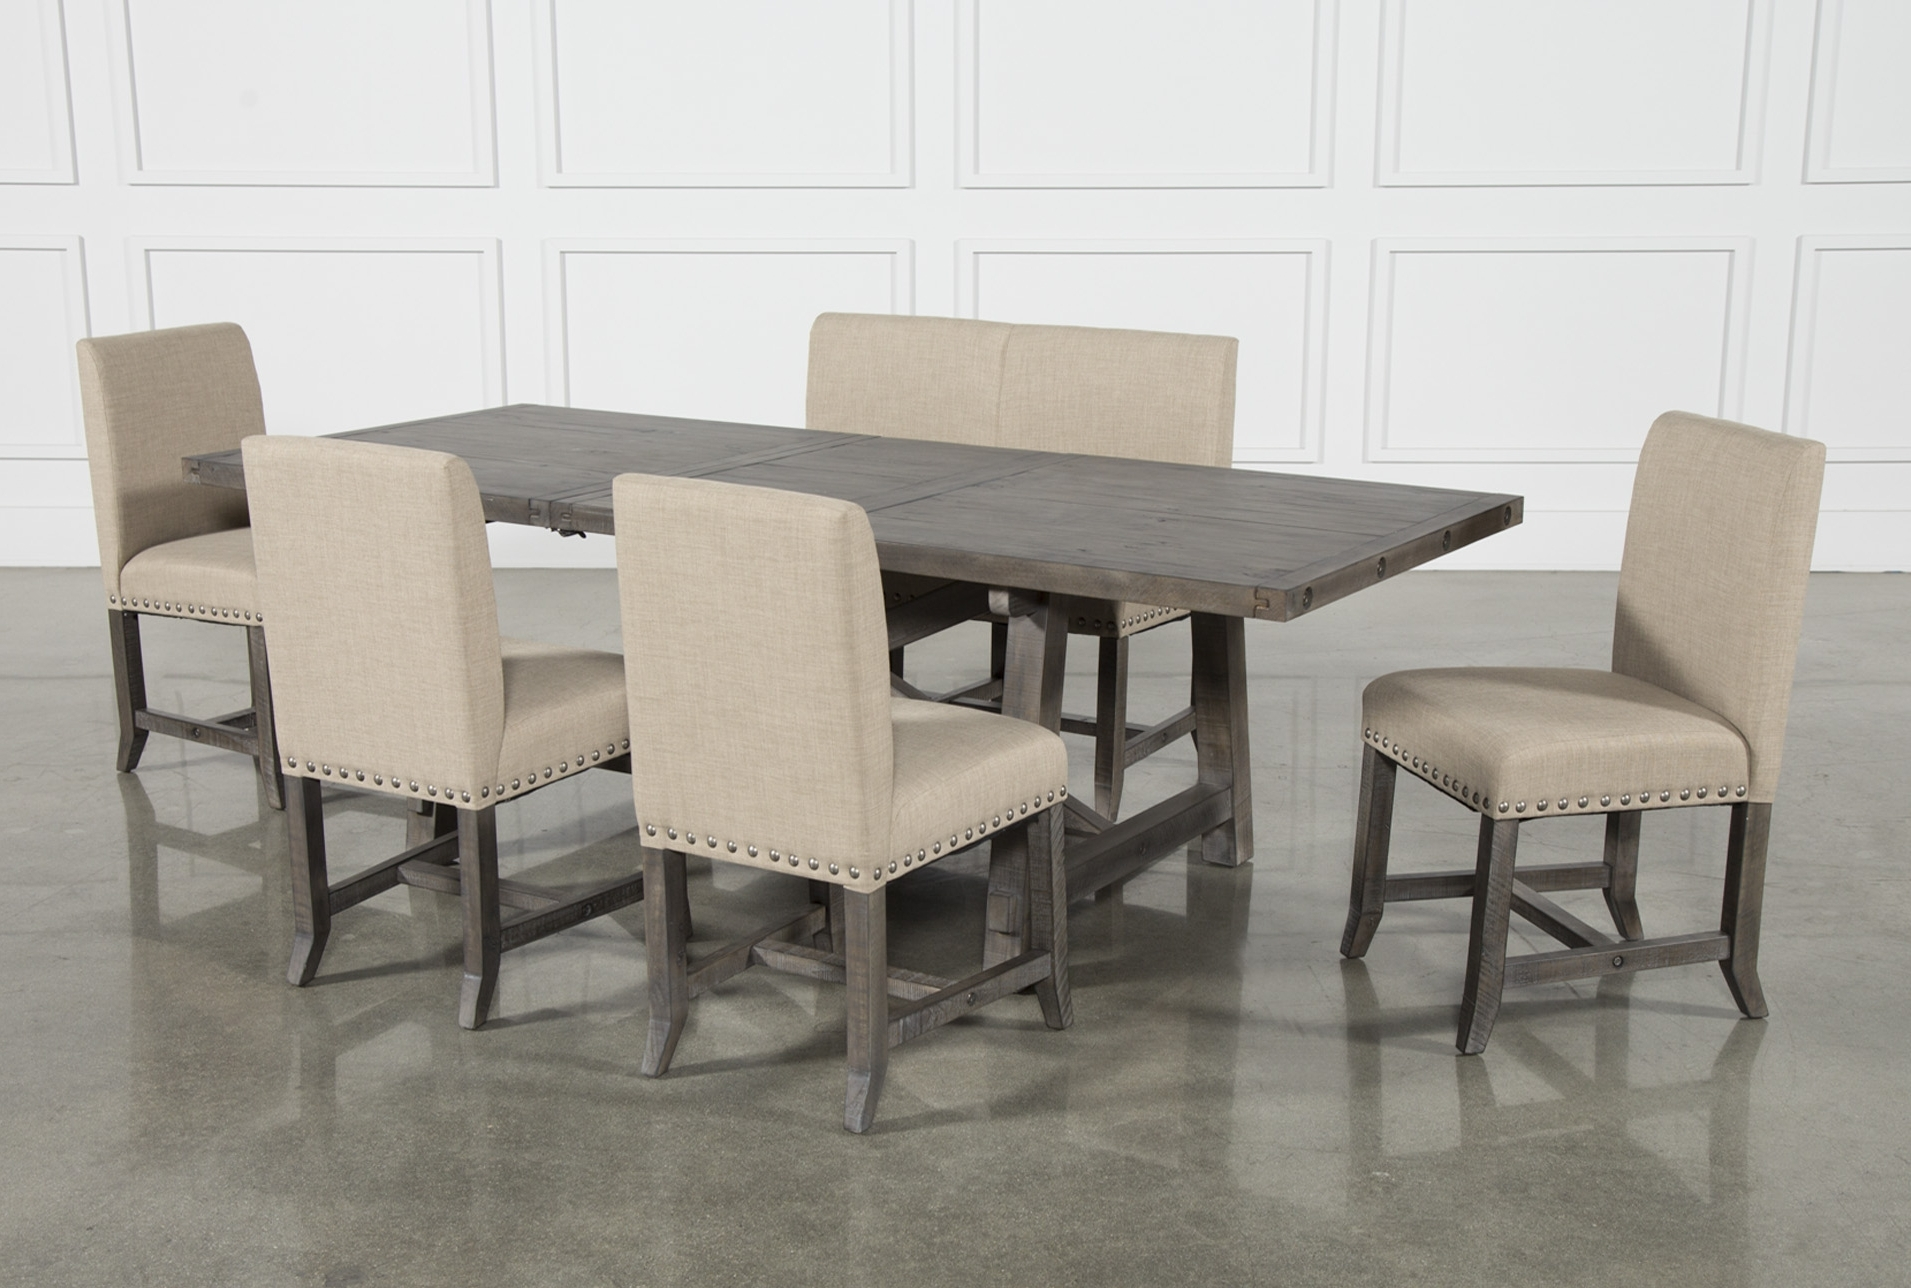 Jaxon Grey 6 Piece Rectangle Extension Dining Sets With Bench & Uph Chairs for Fashionable Jaxon Grey 6 Piece Rectangle Extension Dining Set W/bench & Uph